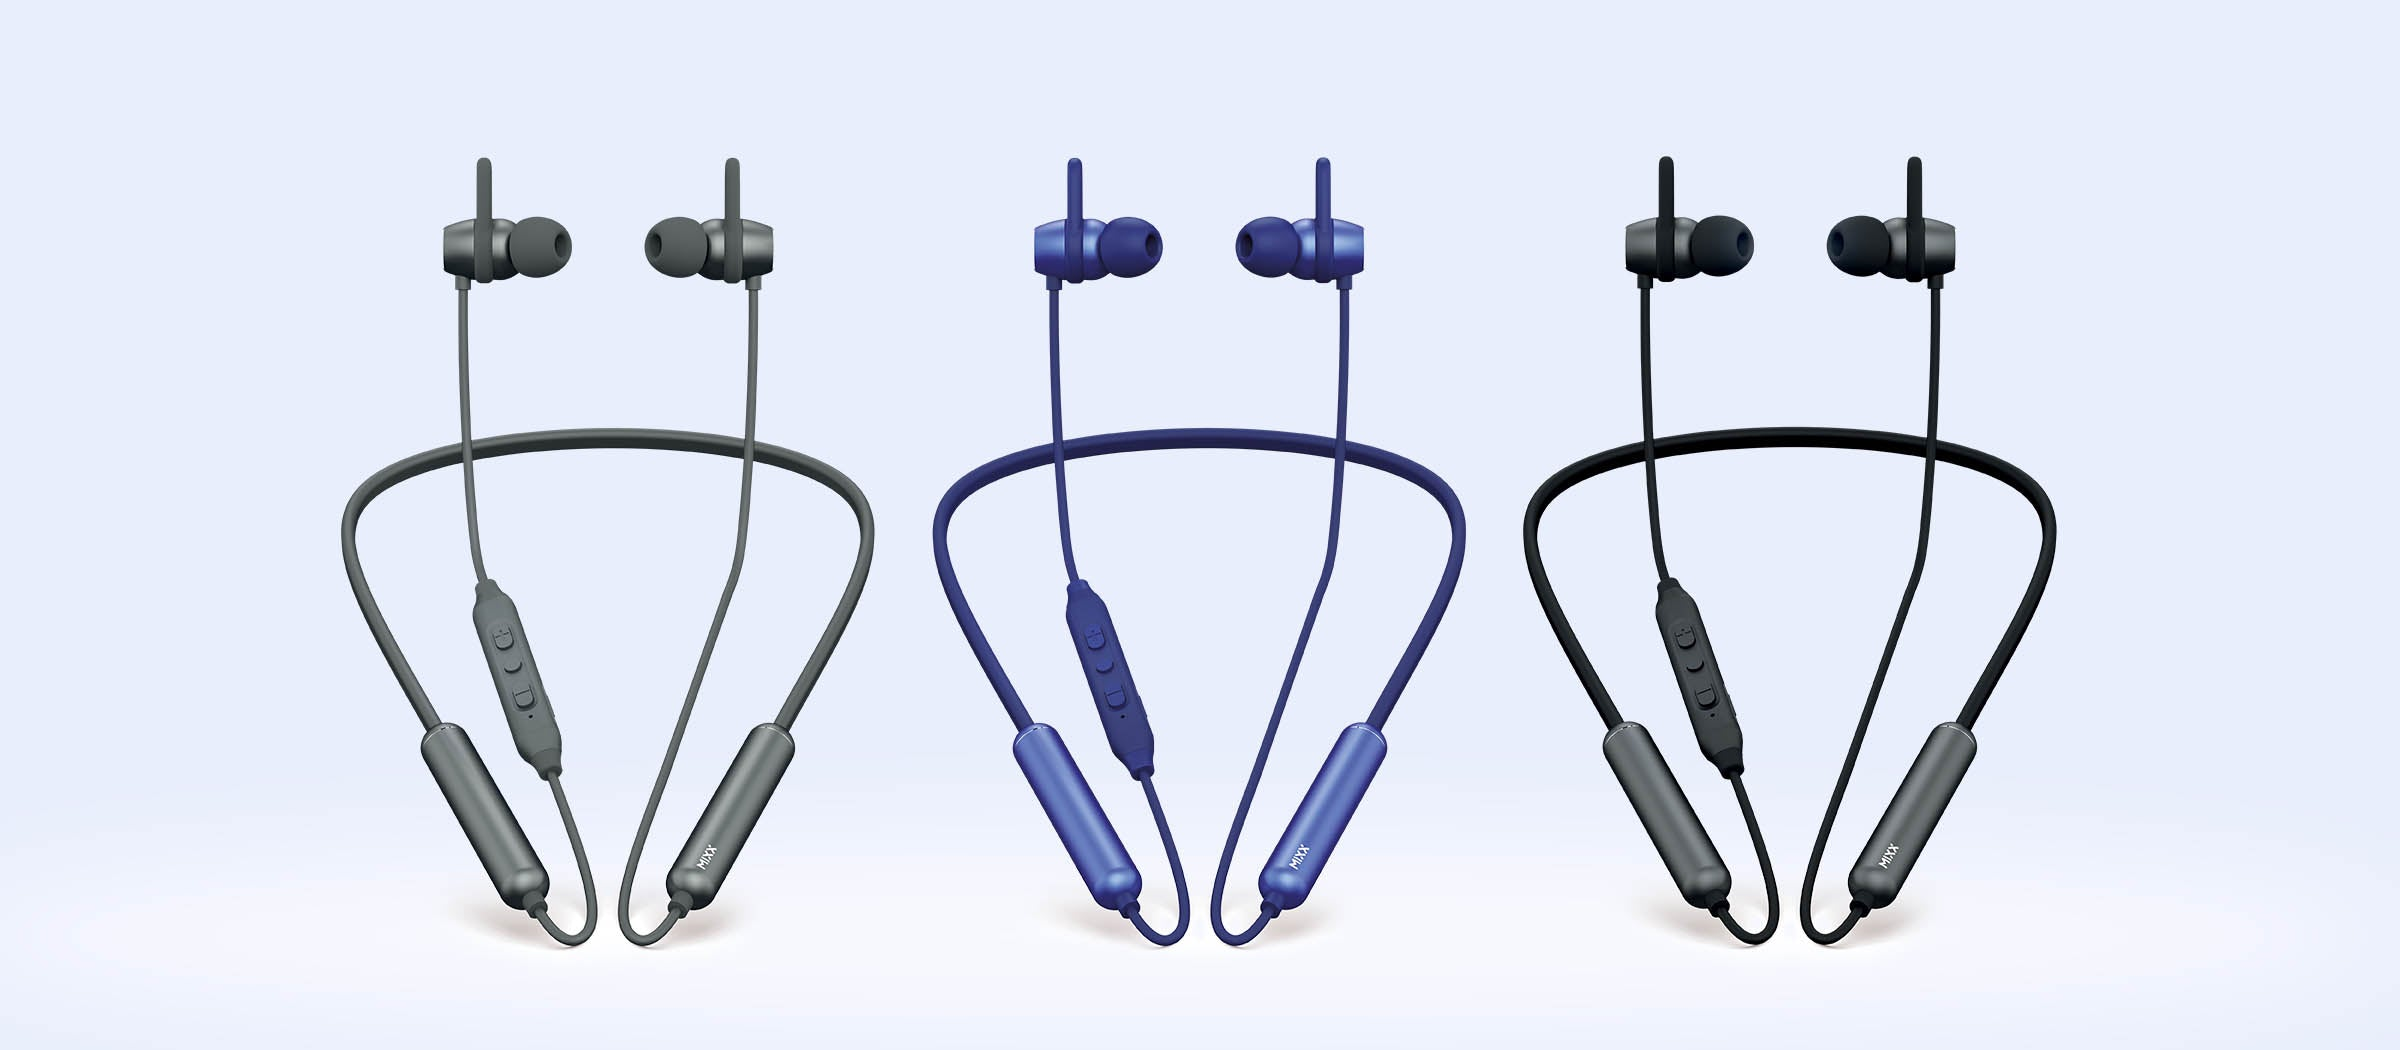 Ultrafit DX wireless headphones